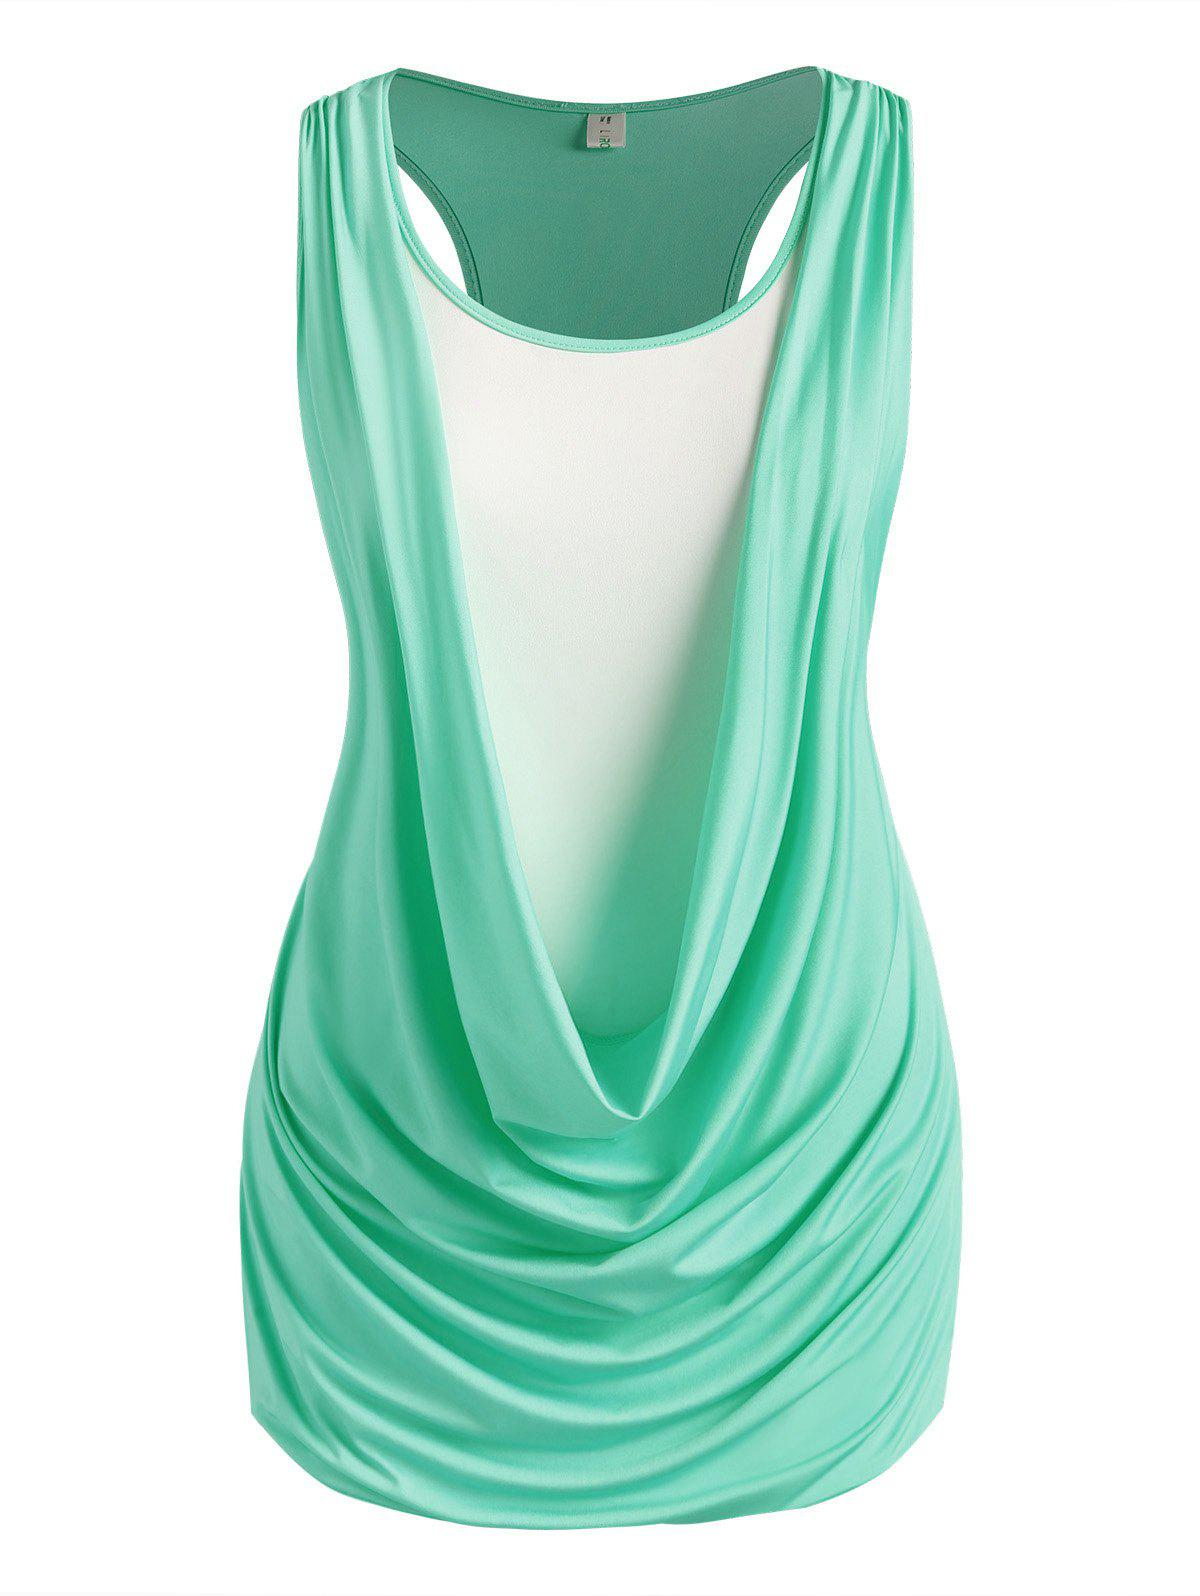 Plus Size Draped Racerback 2 In 1 Ruched Tank Top - LIGHT GREEN 5X